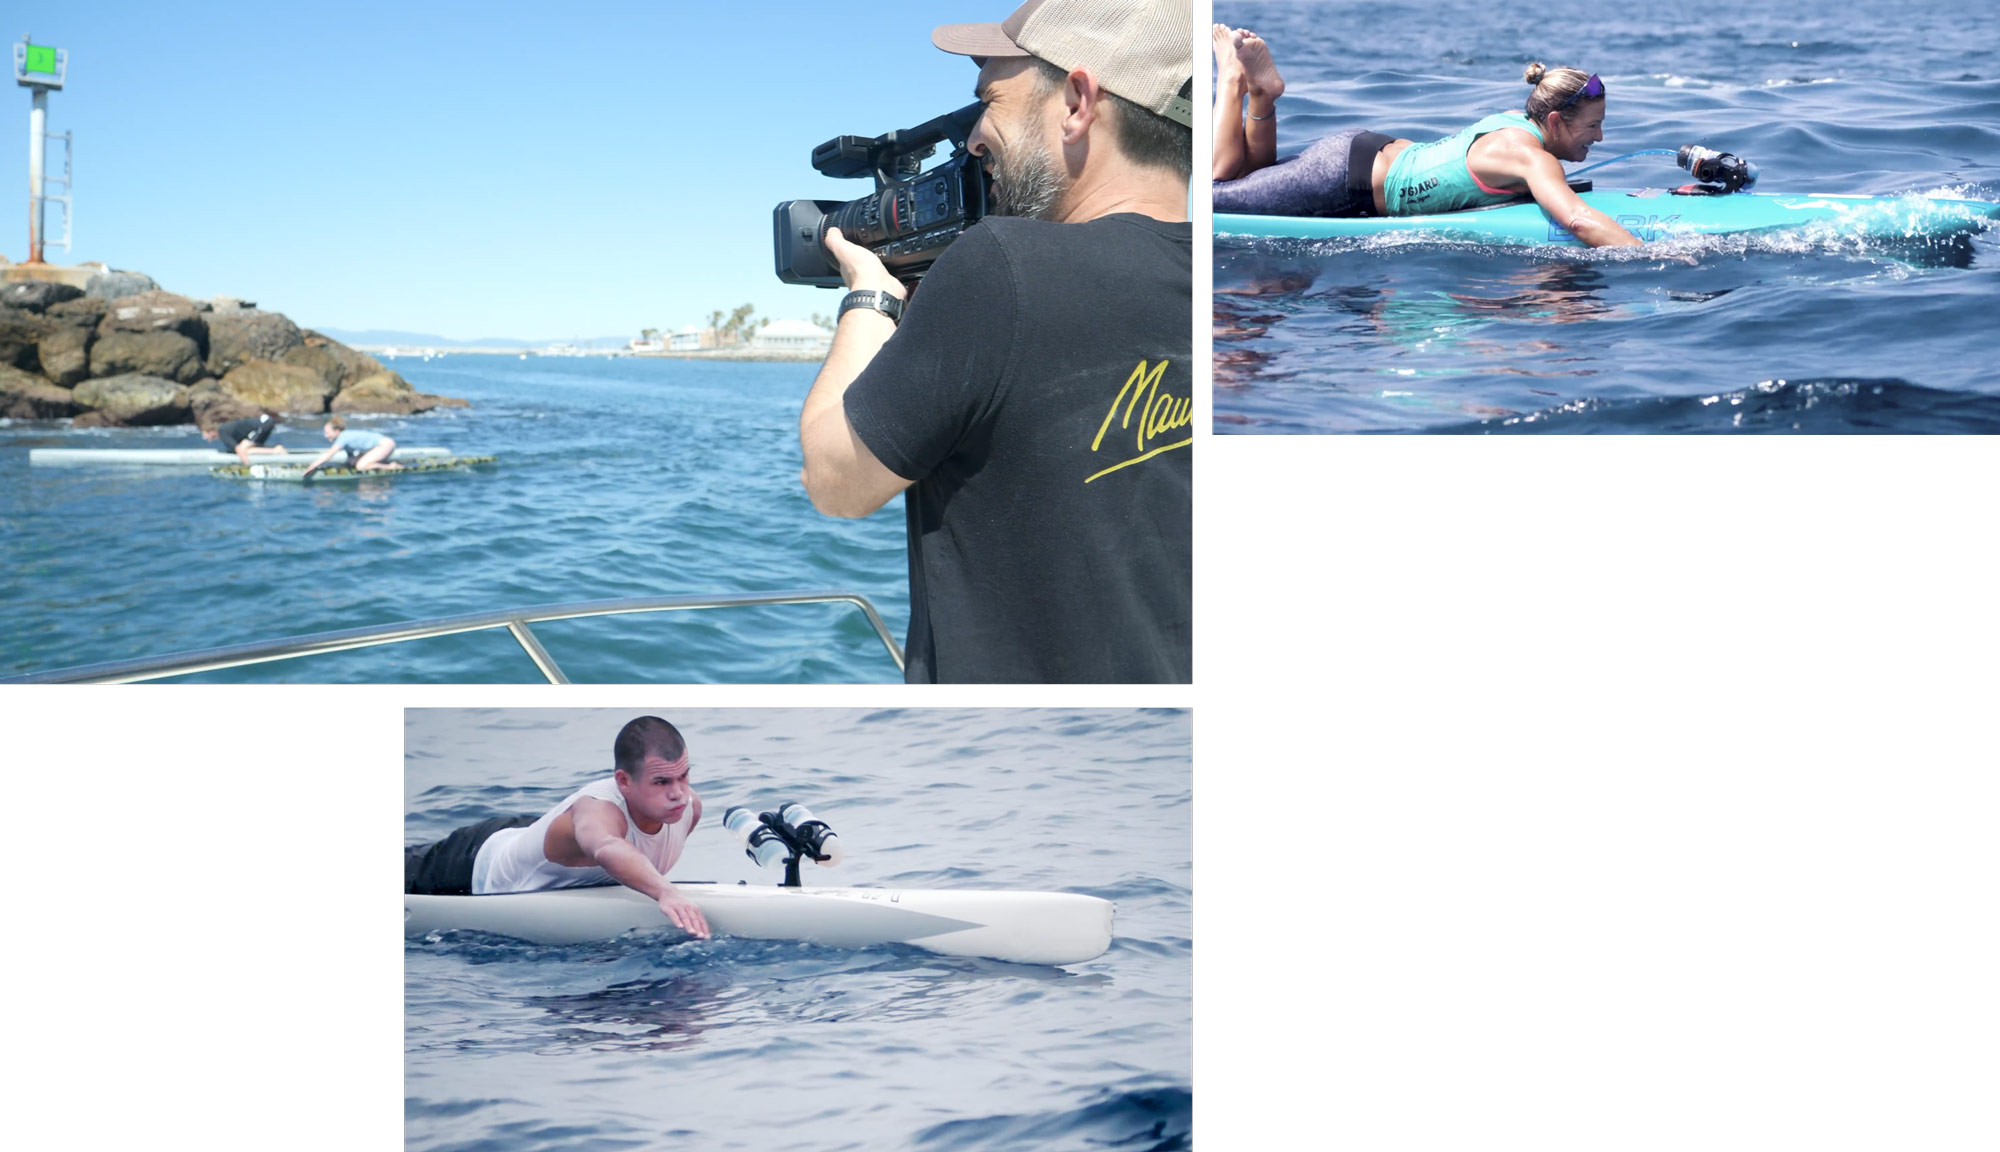 filming paddleboarders, paddleboard competitor in blue, paddleboard racer in white